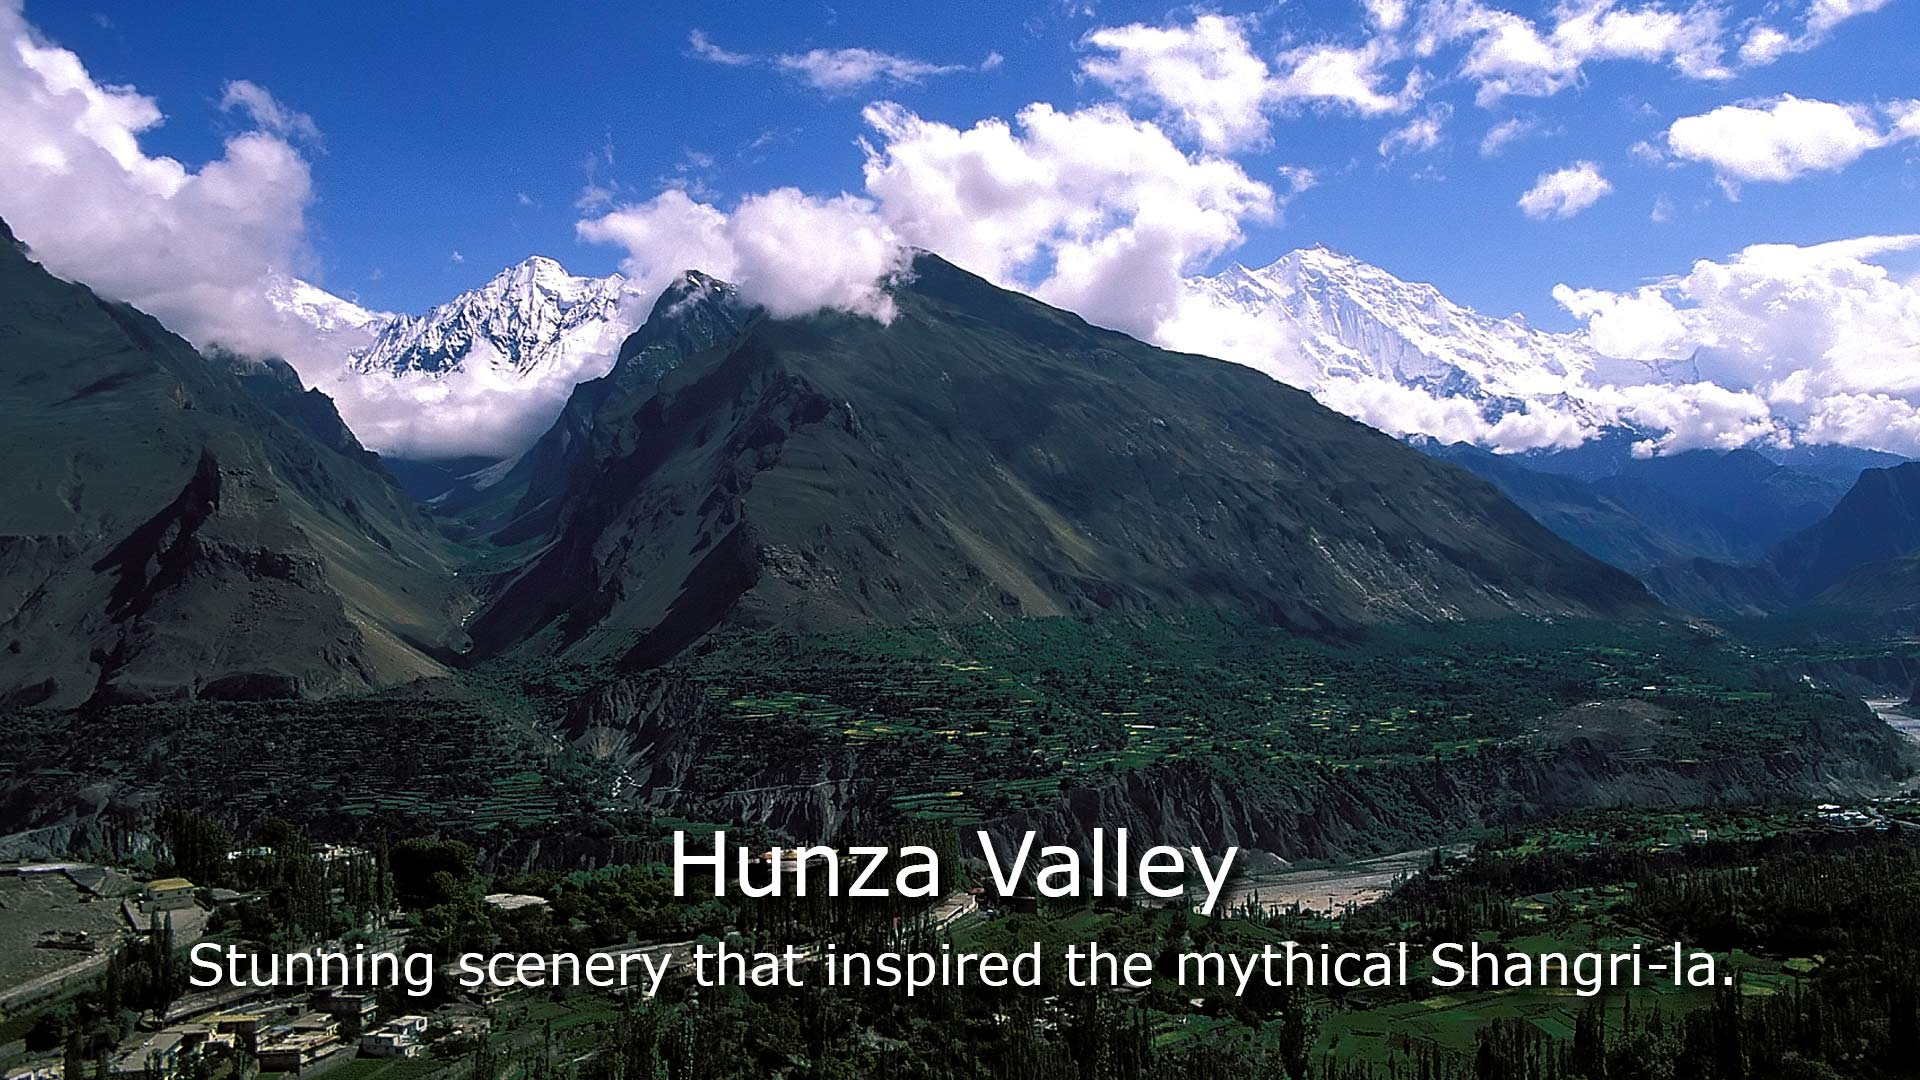 Hunza Valley - Stunning scenery that inspired the mythical Shangri-la.